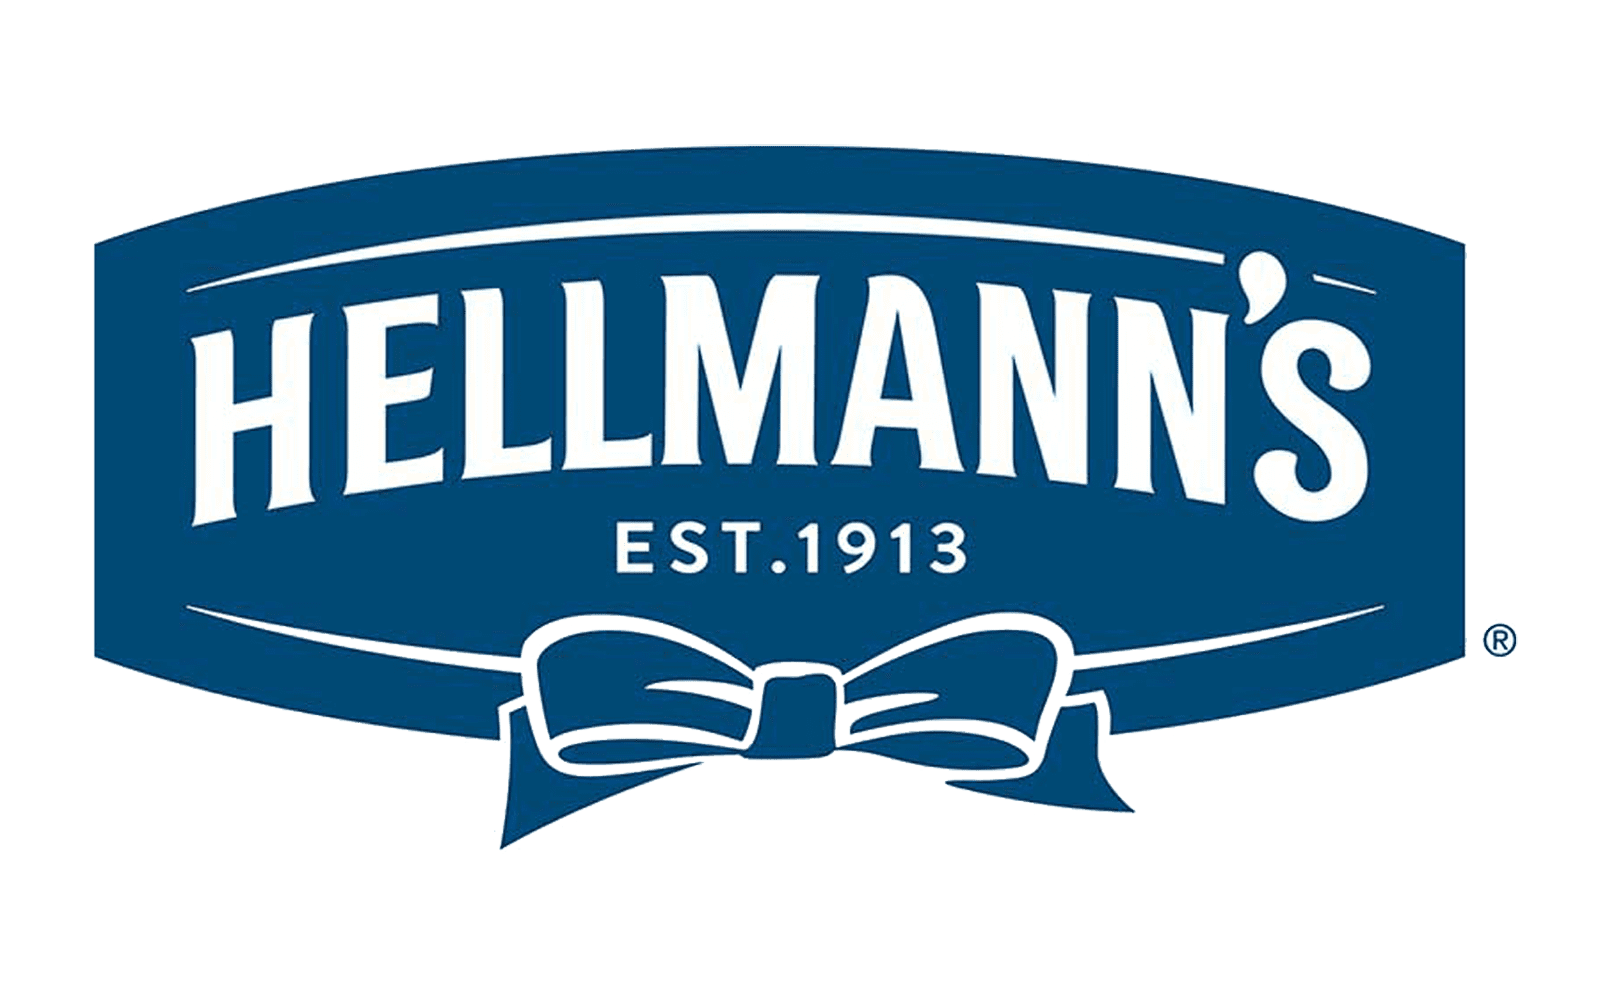 Mayonnaise by Hellmann's & Best Foods, 10,/805 Cases, Ext. Retail $113,120, Wilmer, TX